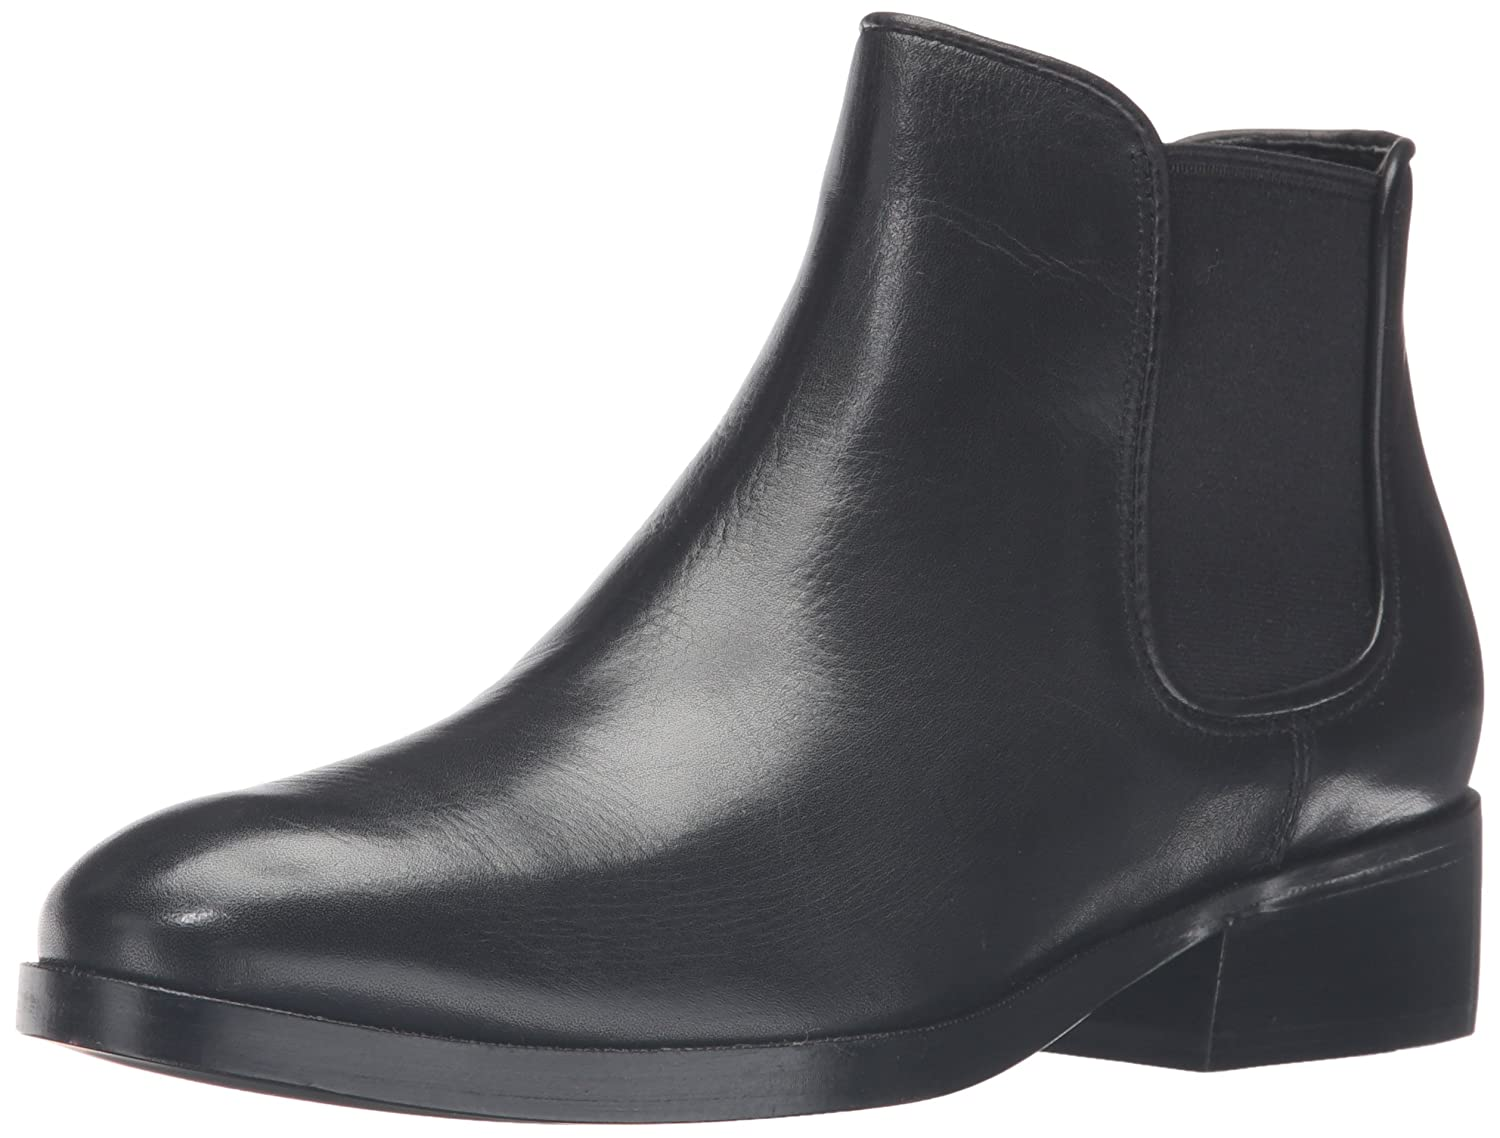 Cole Boots Haan Women's Ferri Bootie Chelsea Boots Cole B01FX499YU 8 M US|Black Leather 84ce16